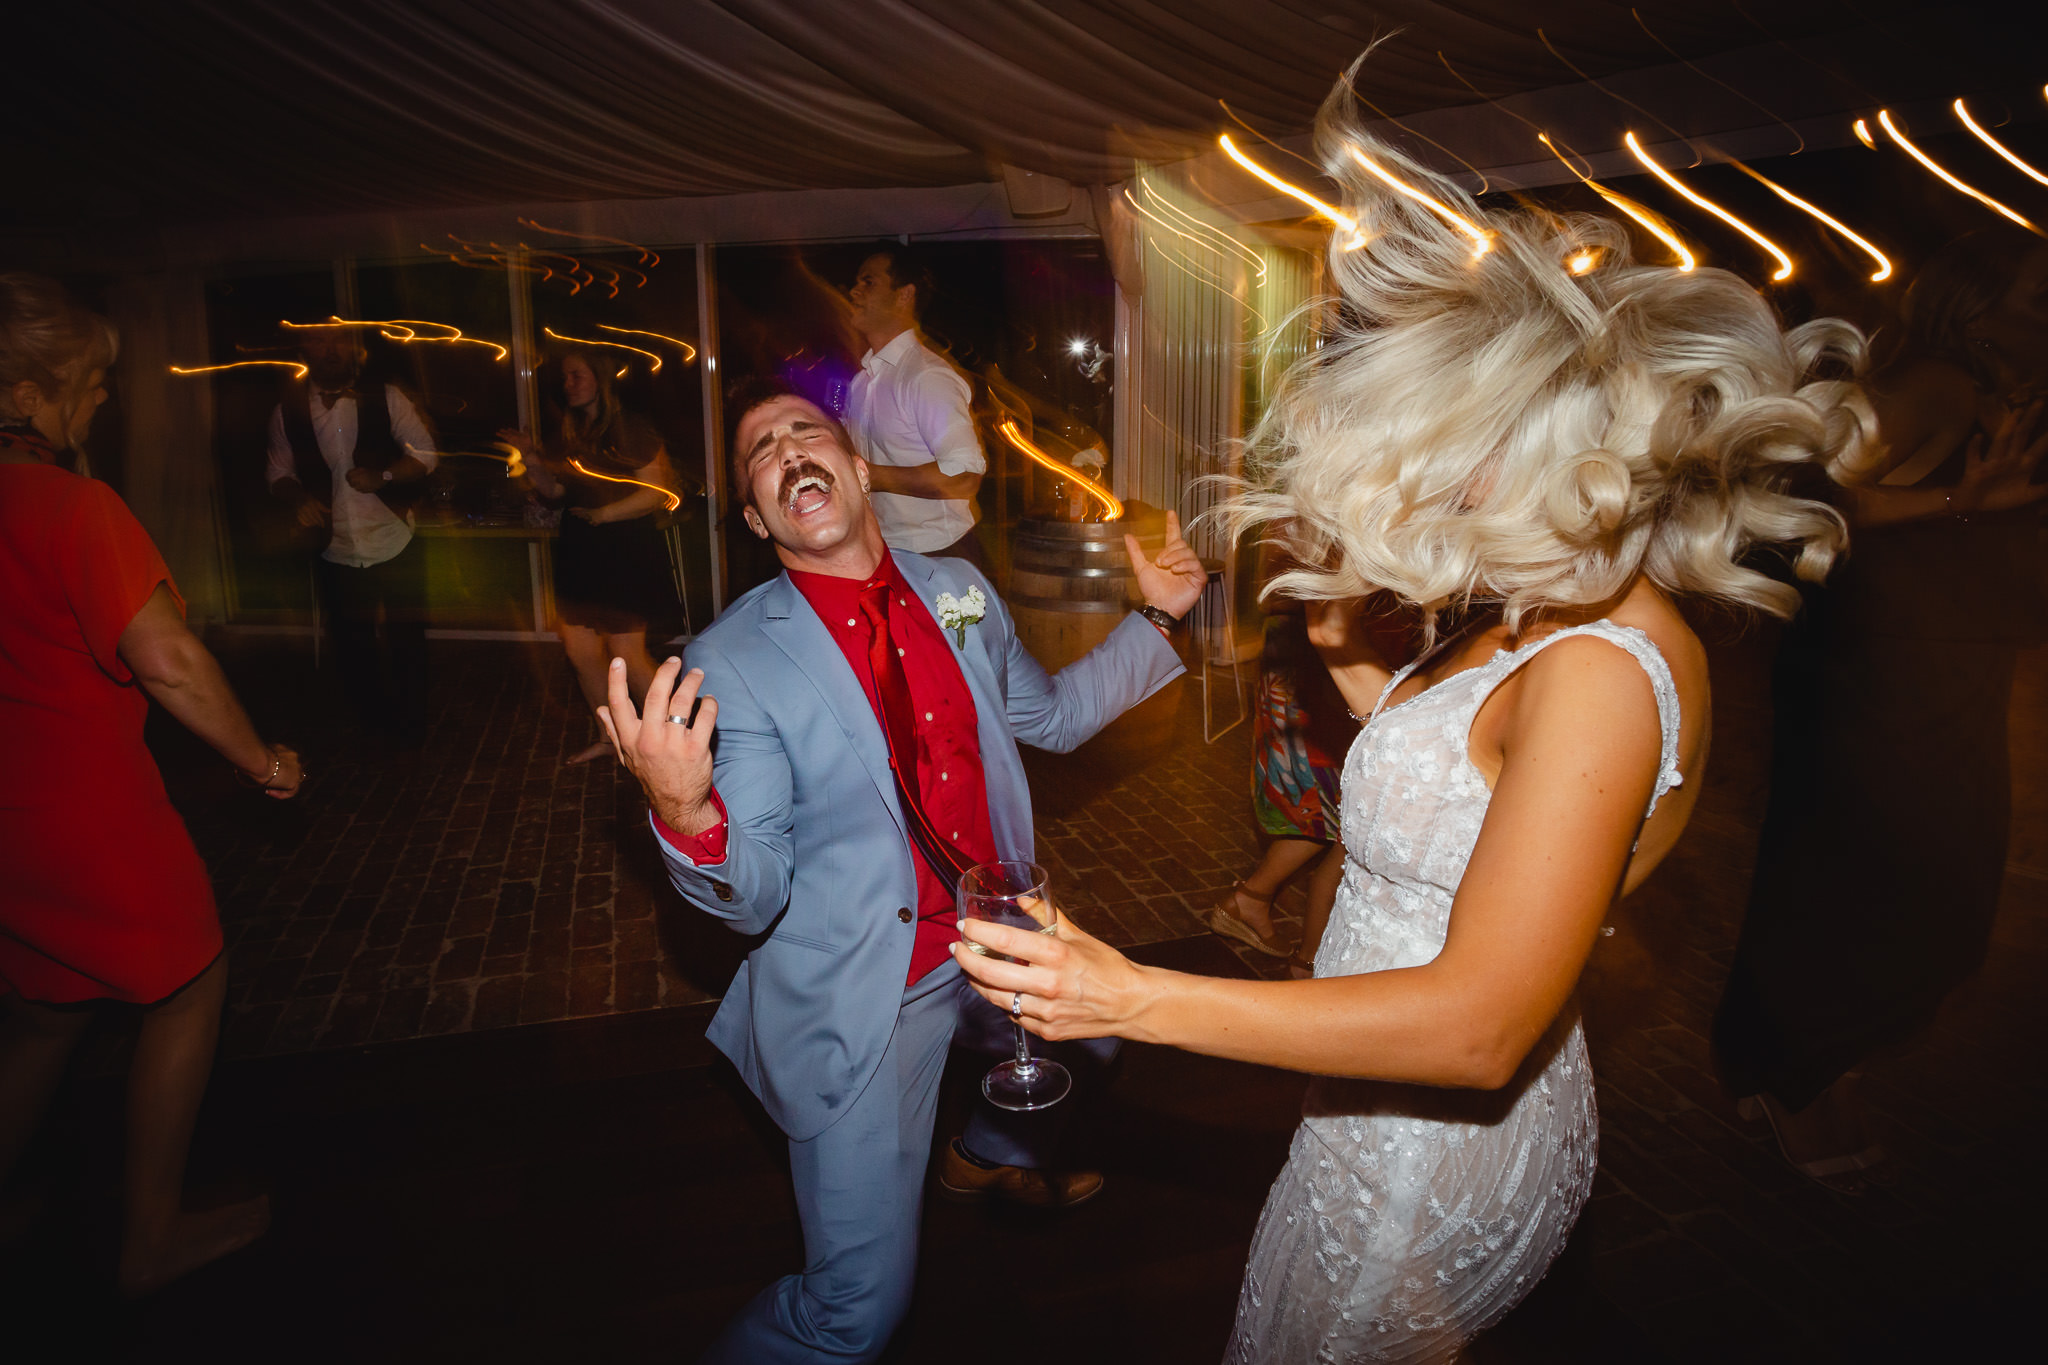 party photo of bride shaking hair and dancing with her brother at a wedding